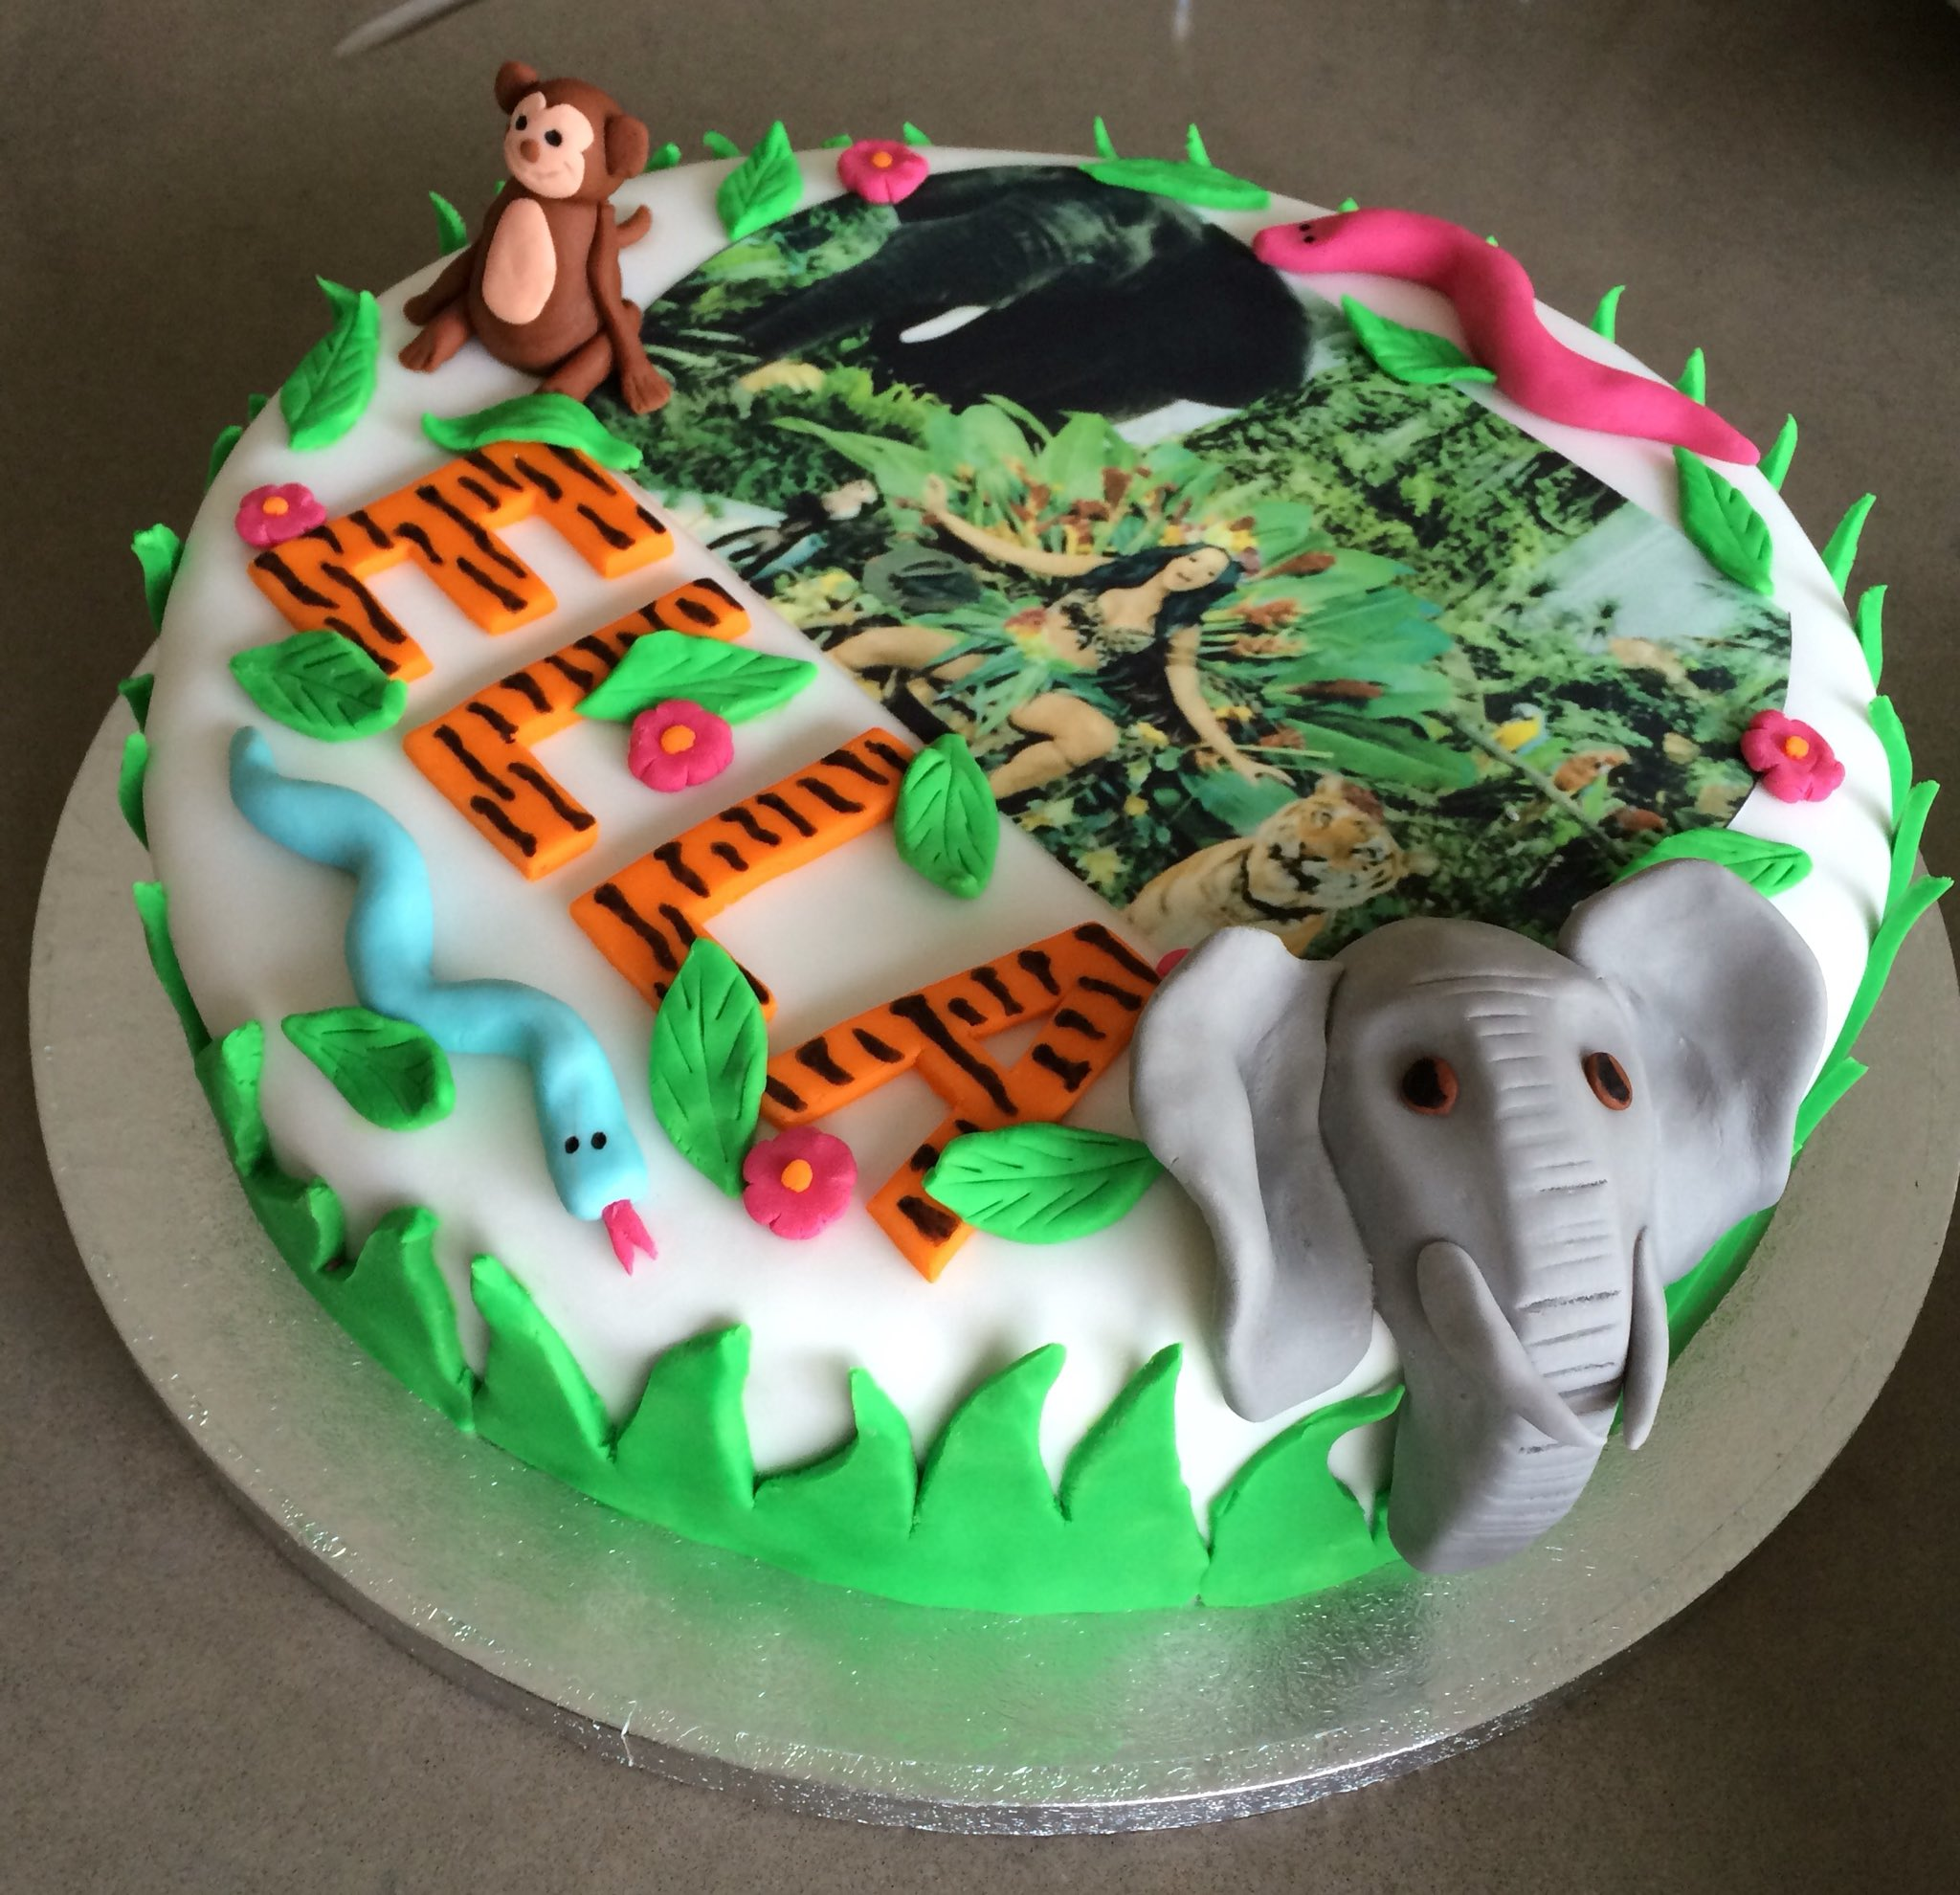 Prime T Cakes Catering A Twitteren Katy Perry Roar Birthday Cake For Birthday Cards Printable Inklcafe Filternl